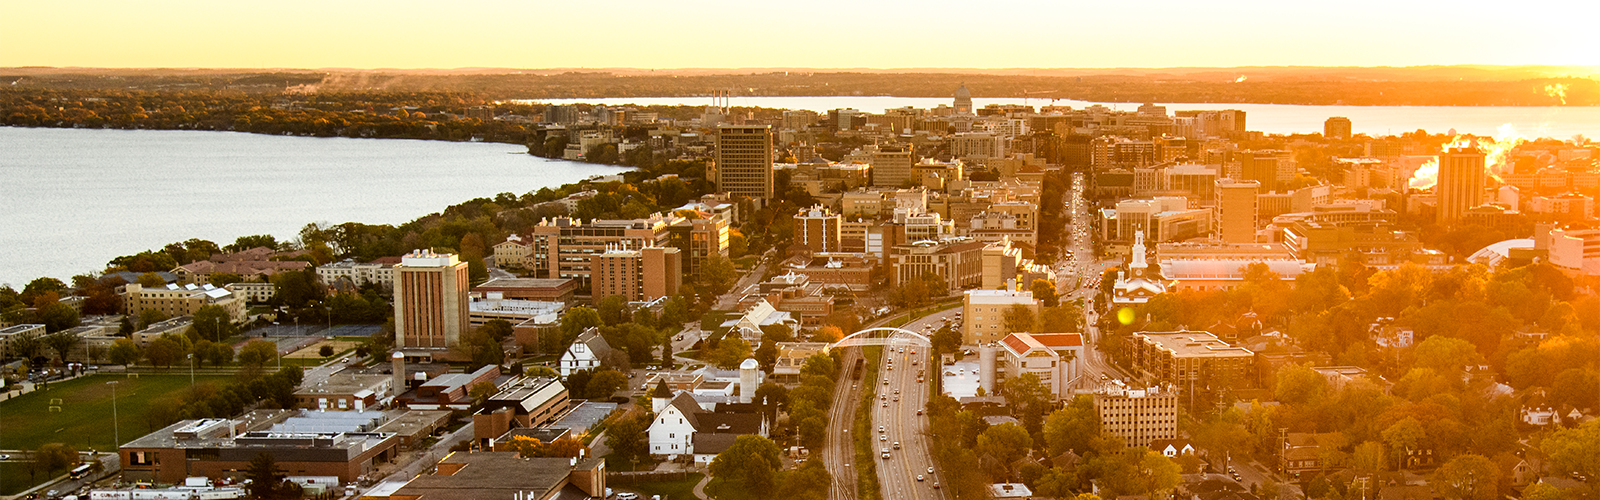 The UW–Madison campus on the Madison isthmus seen from an airplane with the sun rising on the horizon.